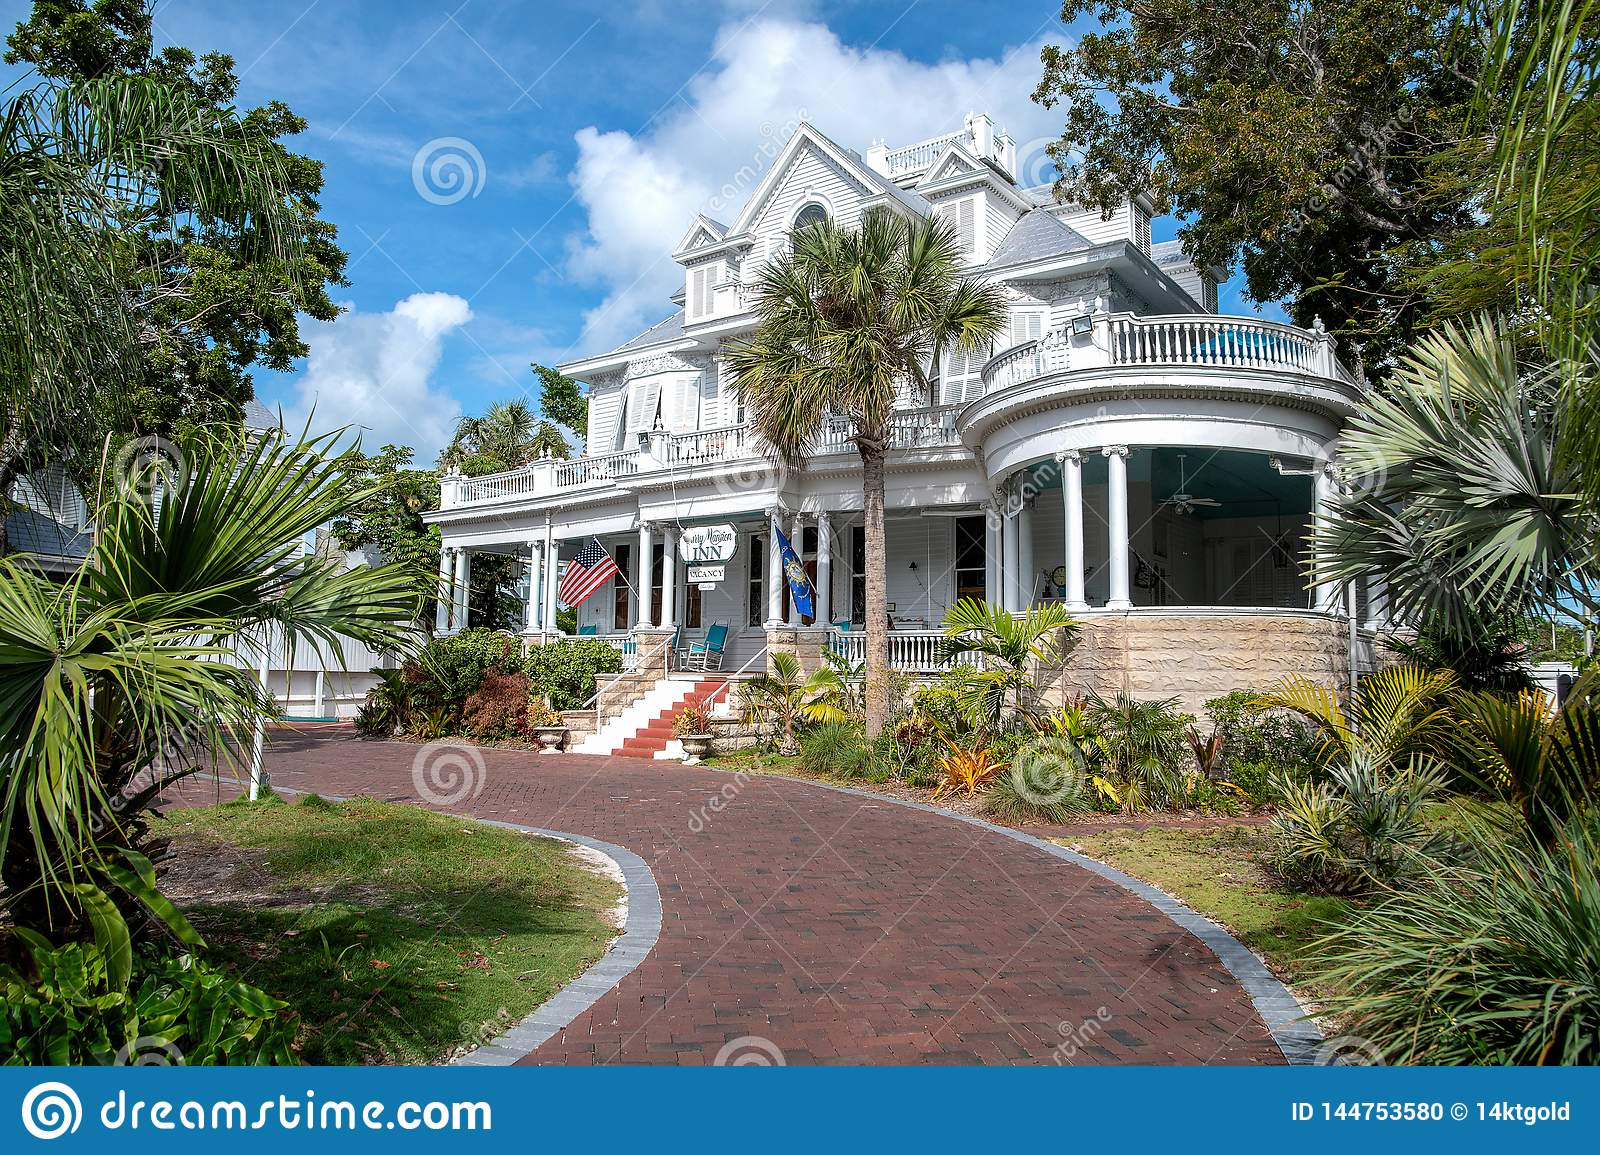 Amsterdam`s Curry Mansion Inn in Key West